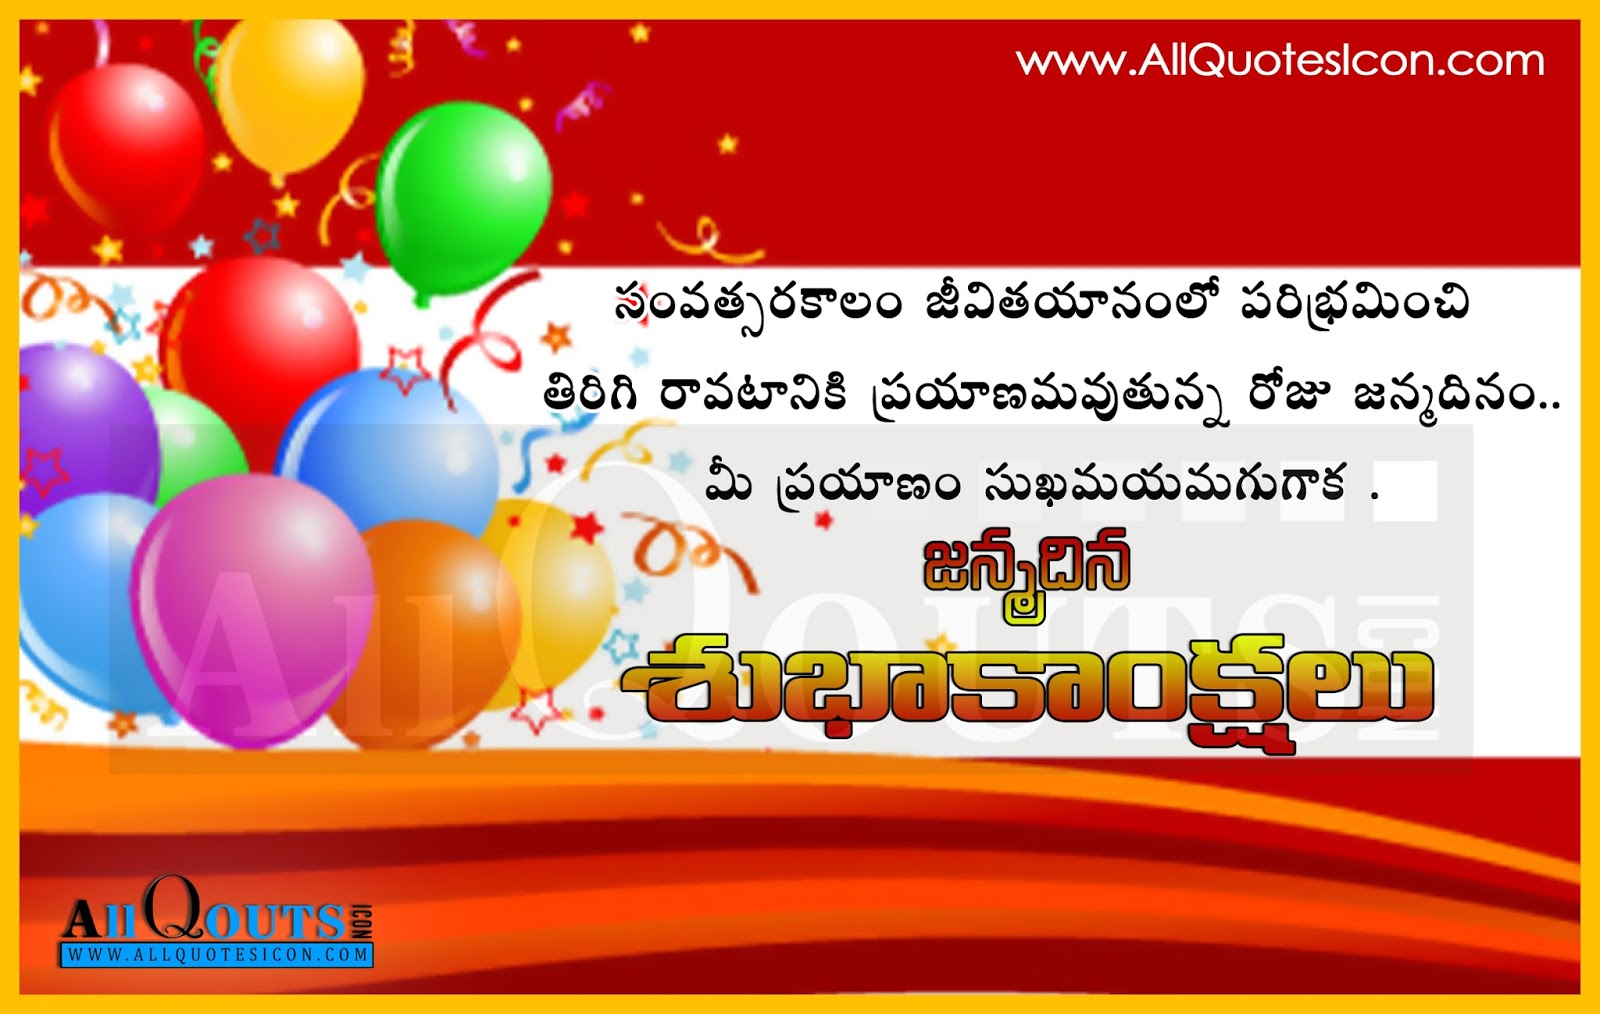 Best Wishes and Sayings of Happy Birthday Greetings Telugu